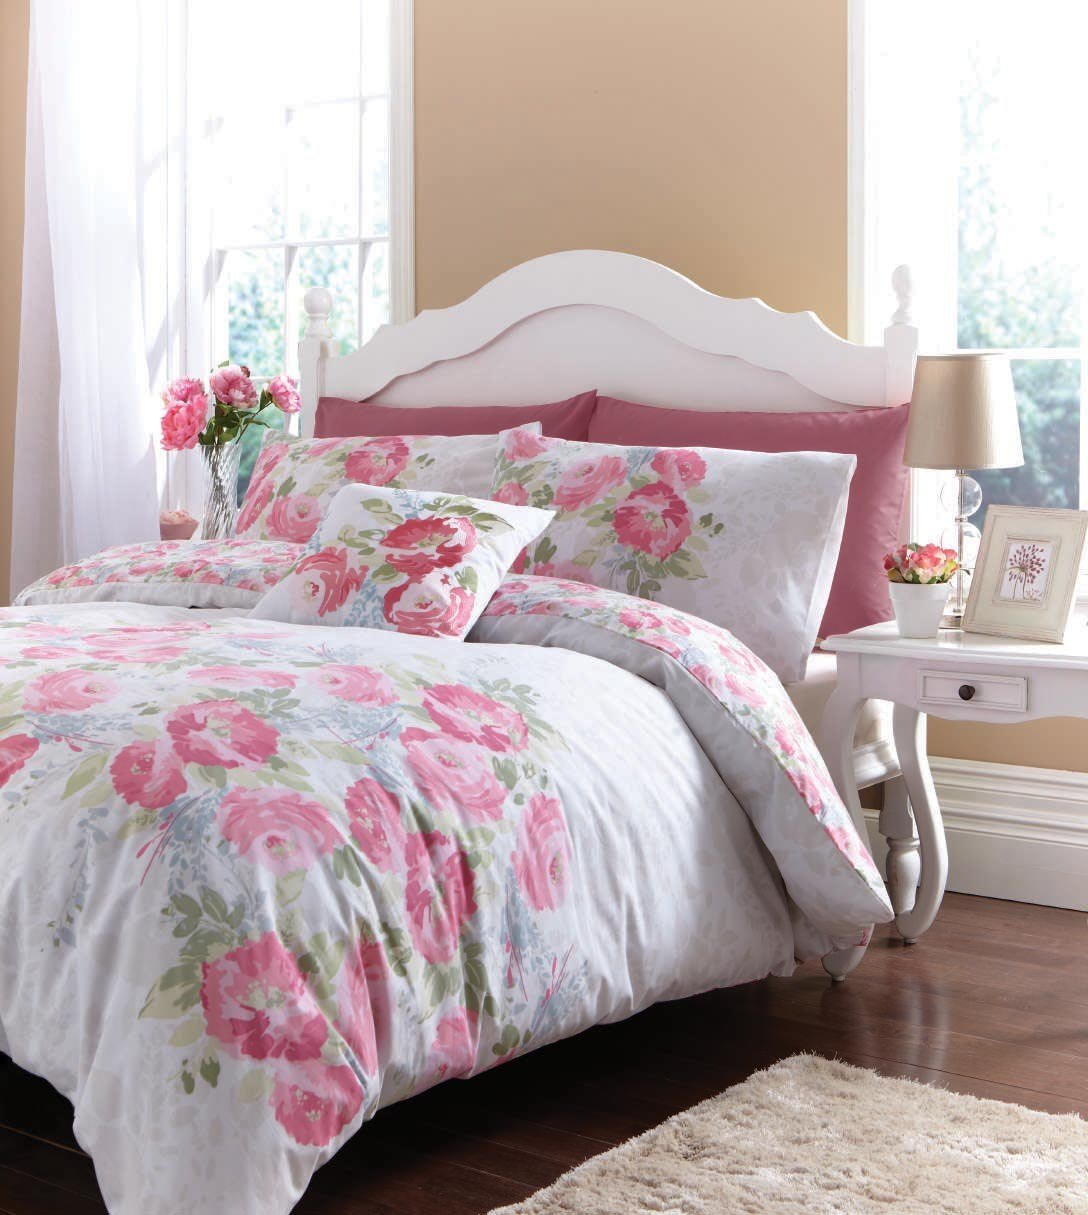 Best Floral Bedding Bed Linen Discount Duvet Cover Set Ebay With Pictures